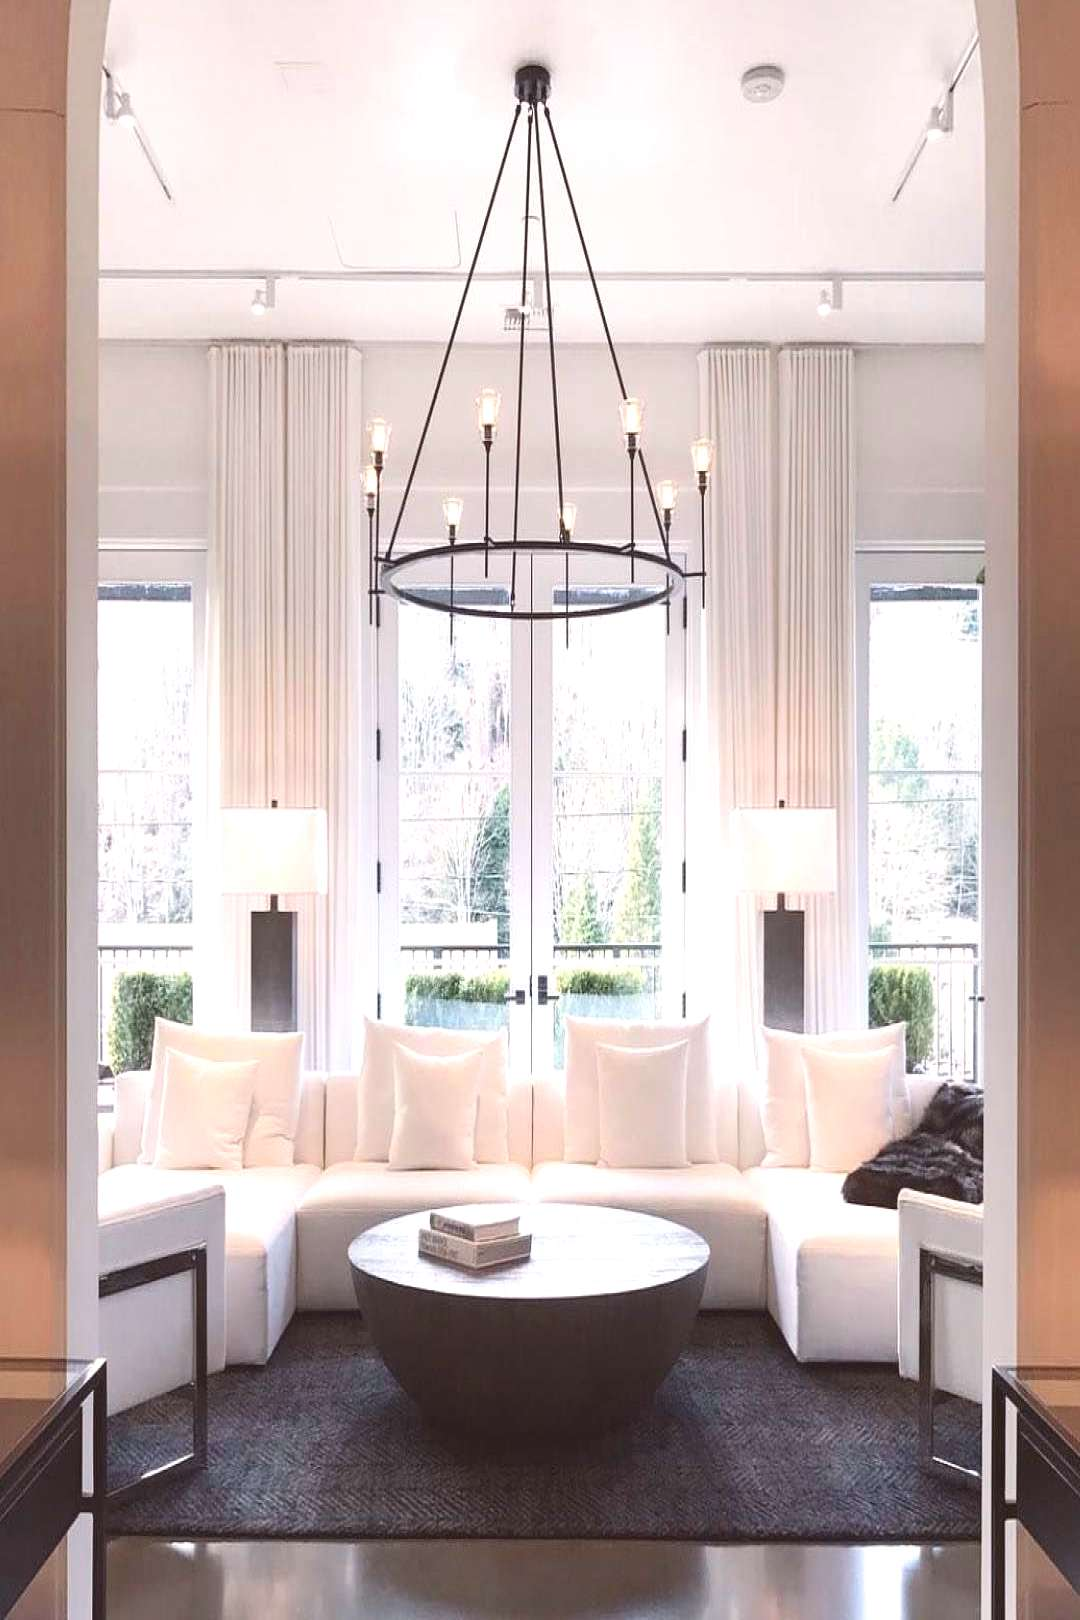 "Restoration Hardware Fan Page on Instagram: "" Restoration Hardware Fan Page on Instagram: """